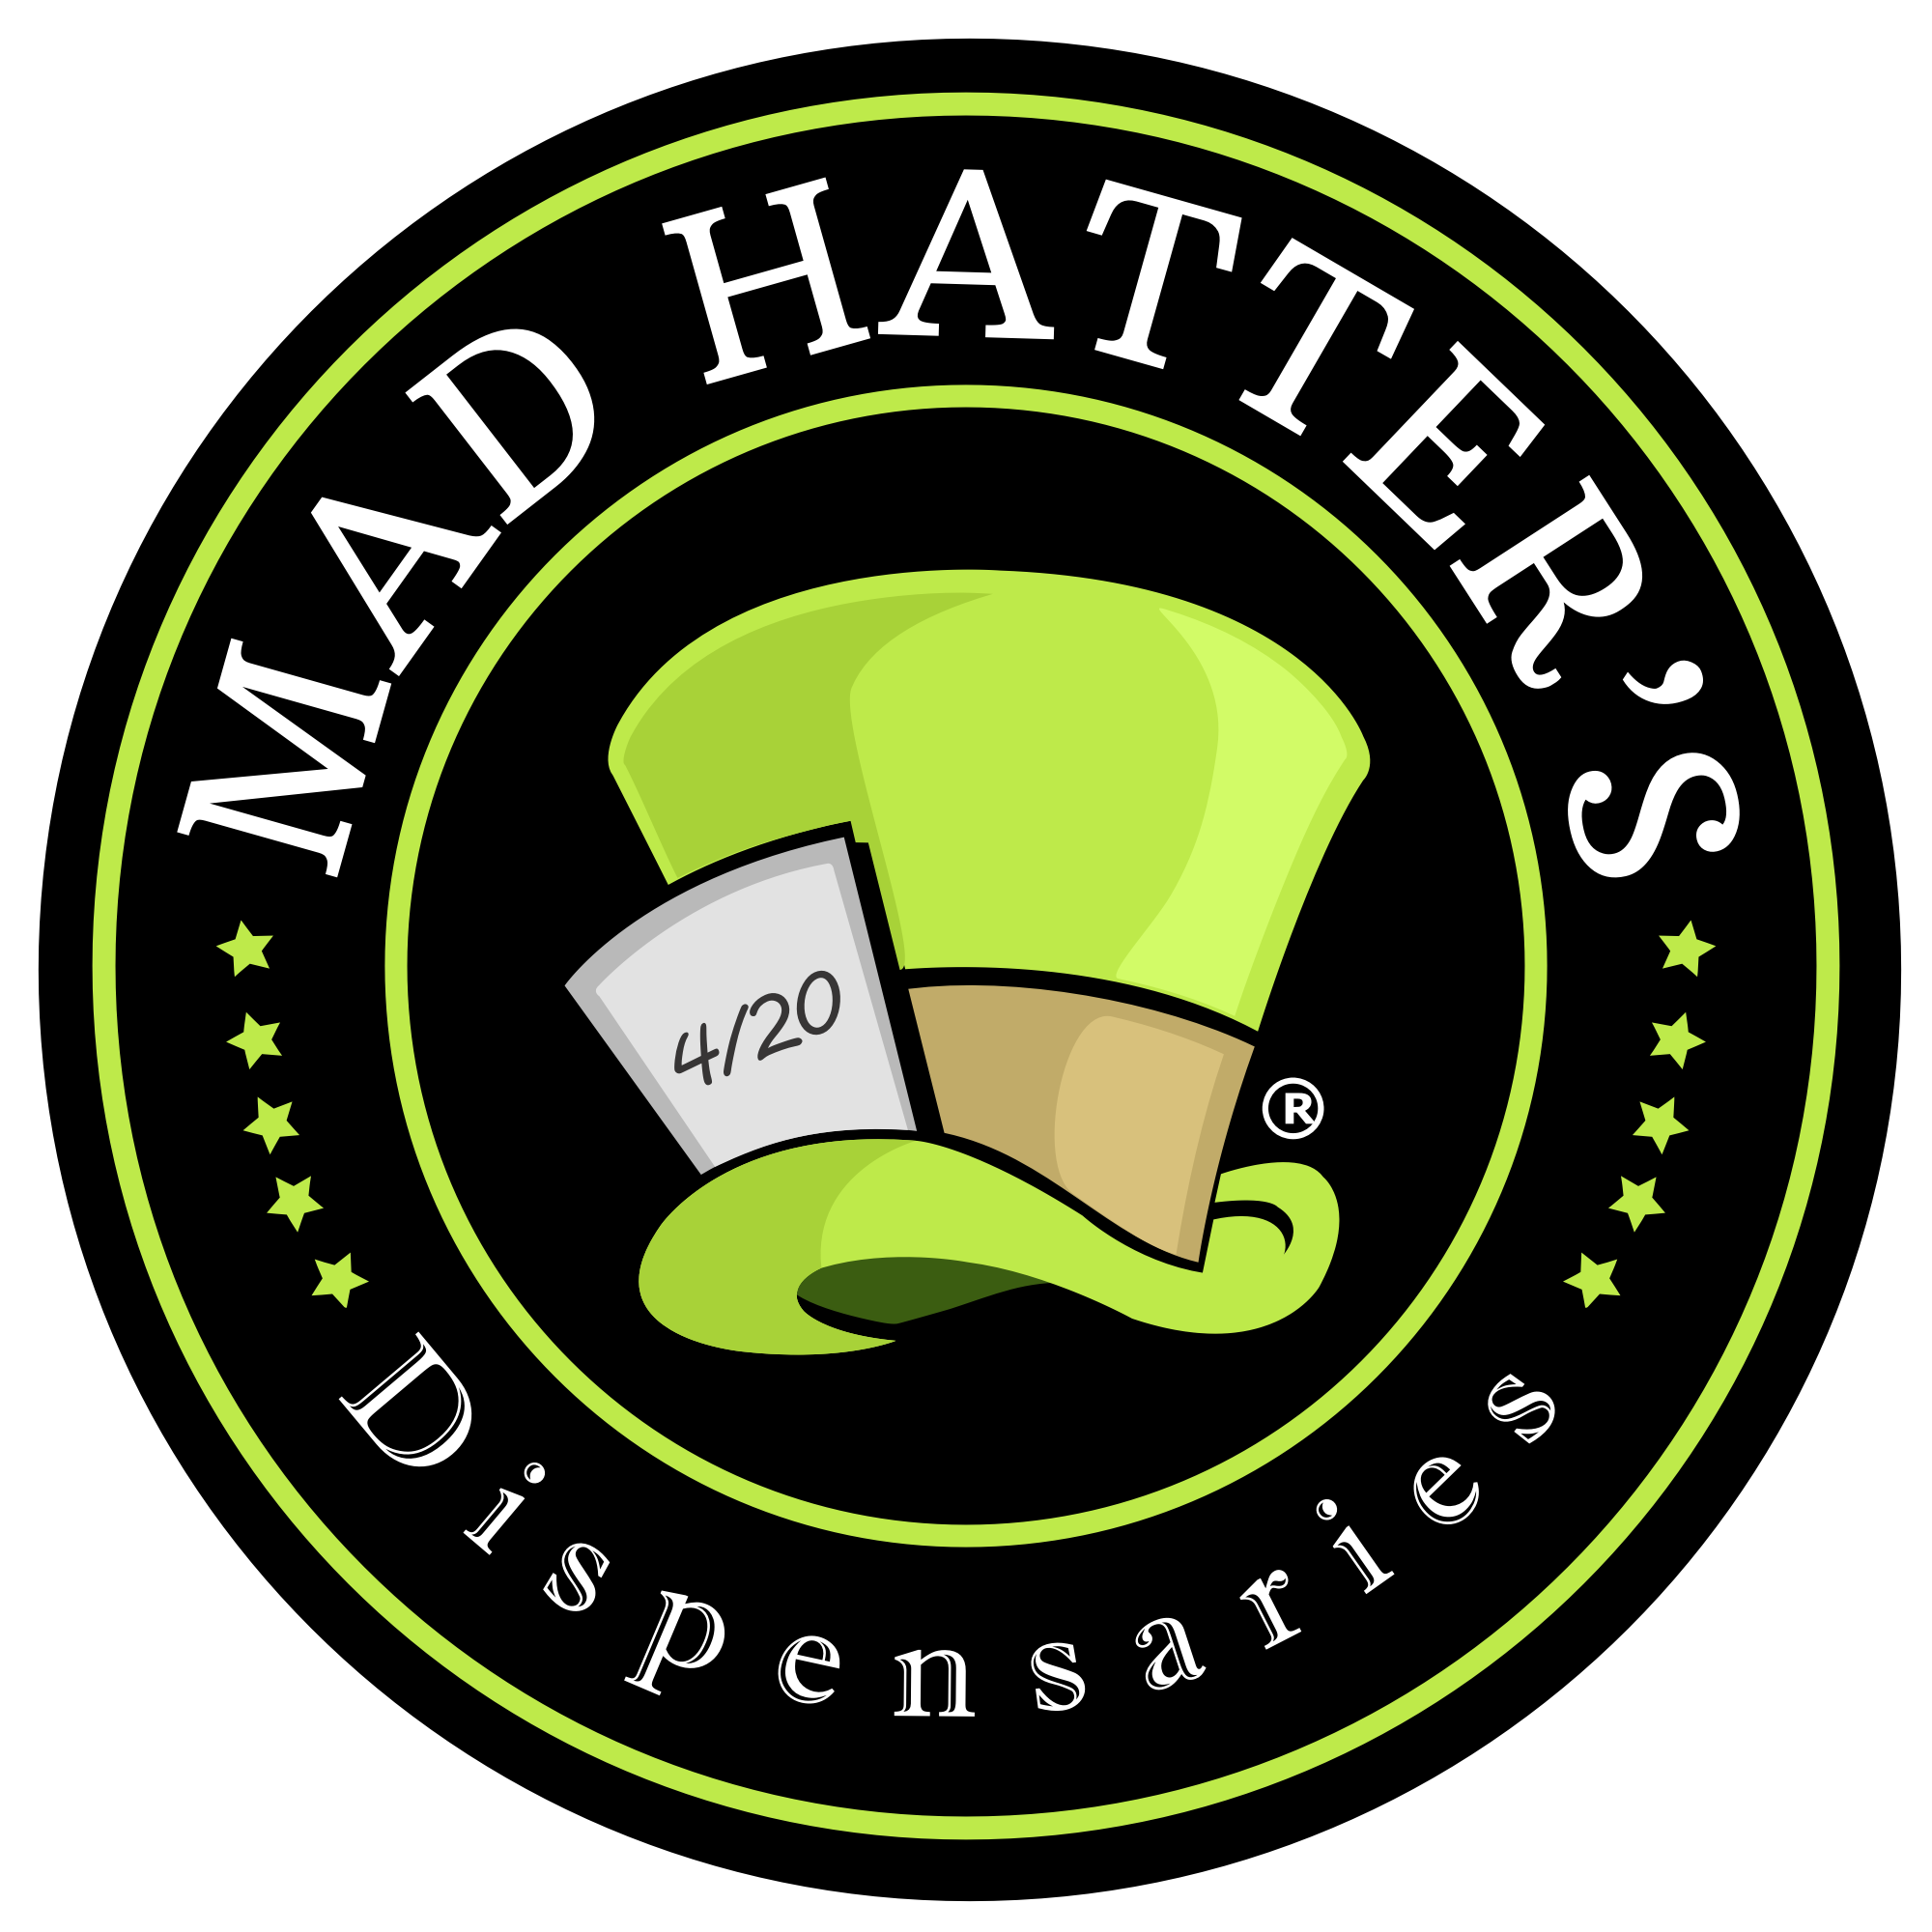 Mad Hatter's Cannabis